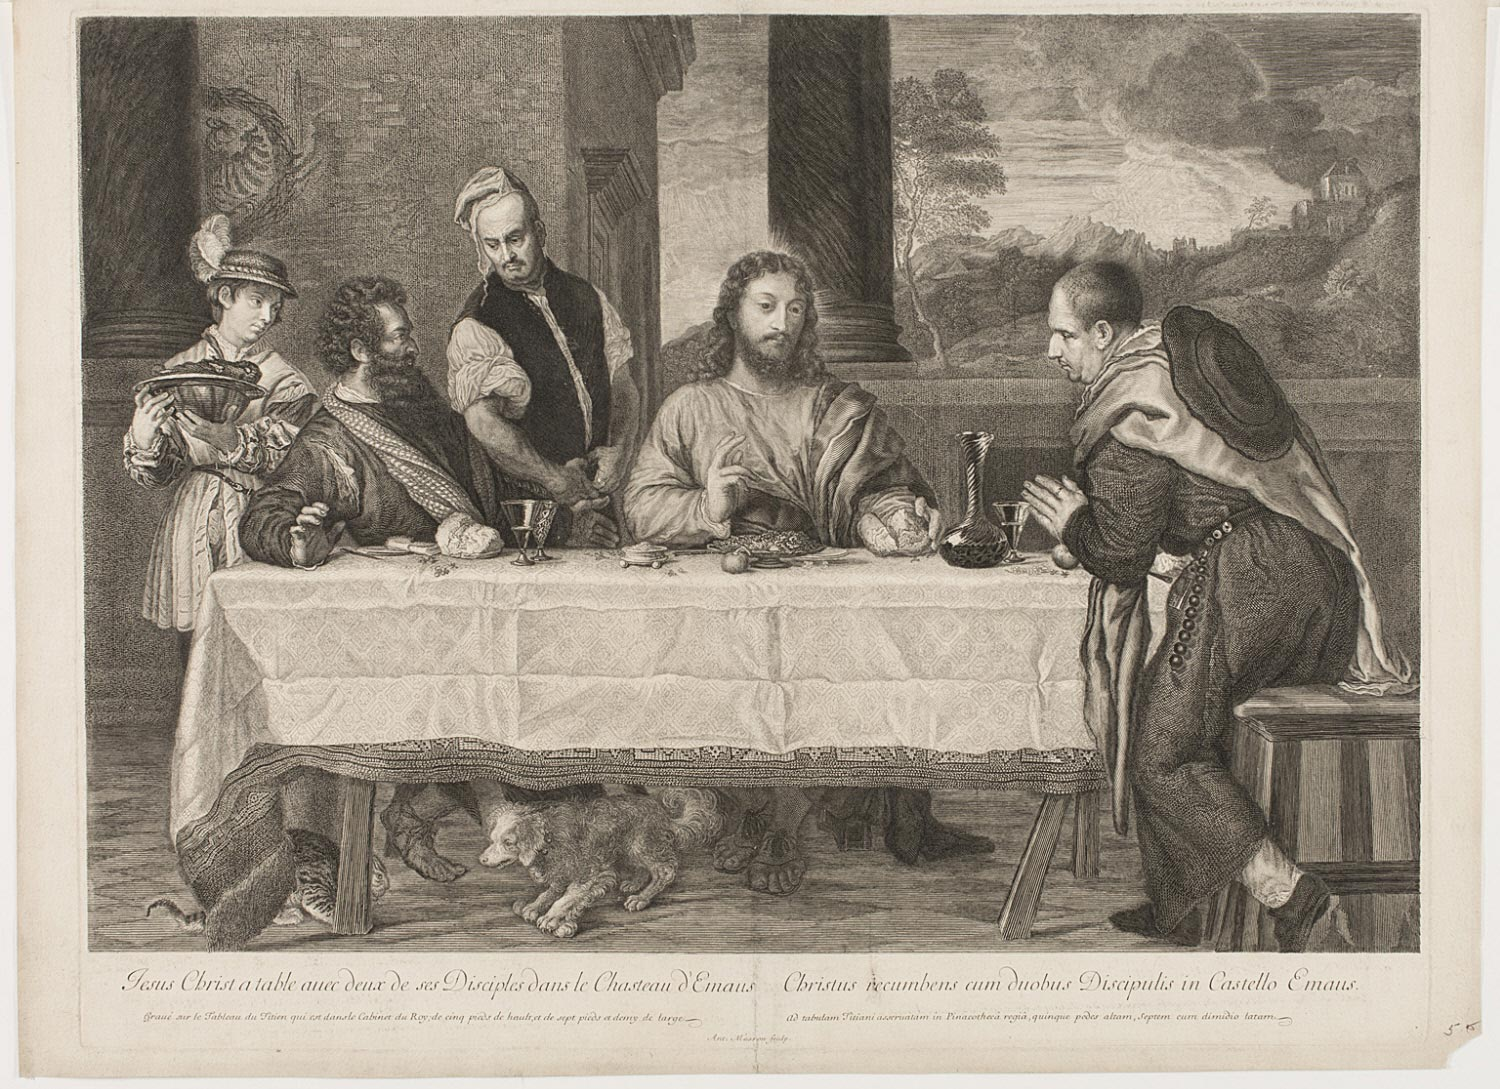 Jesus Christ a table avec deux de ses disciples dans le chasteau d'Emaus  , Late 17th century, by Antoine Masson, French from the  Philadelphia Museum of Art